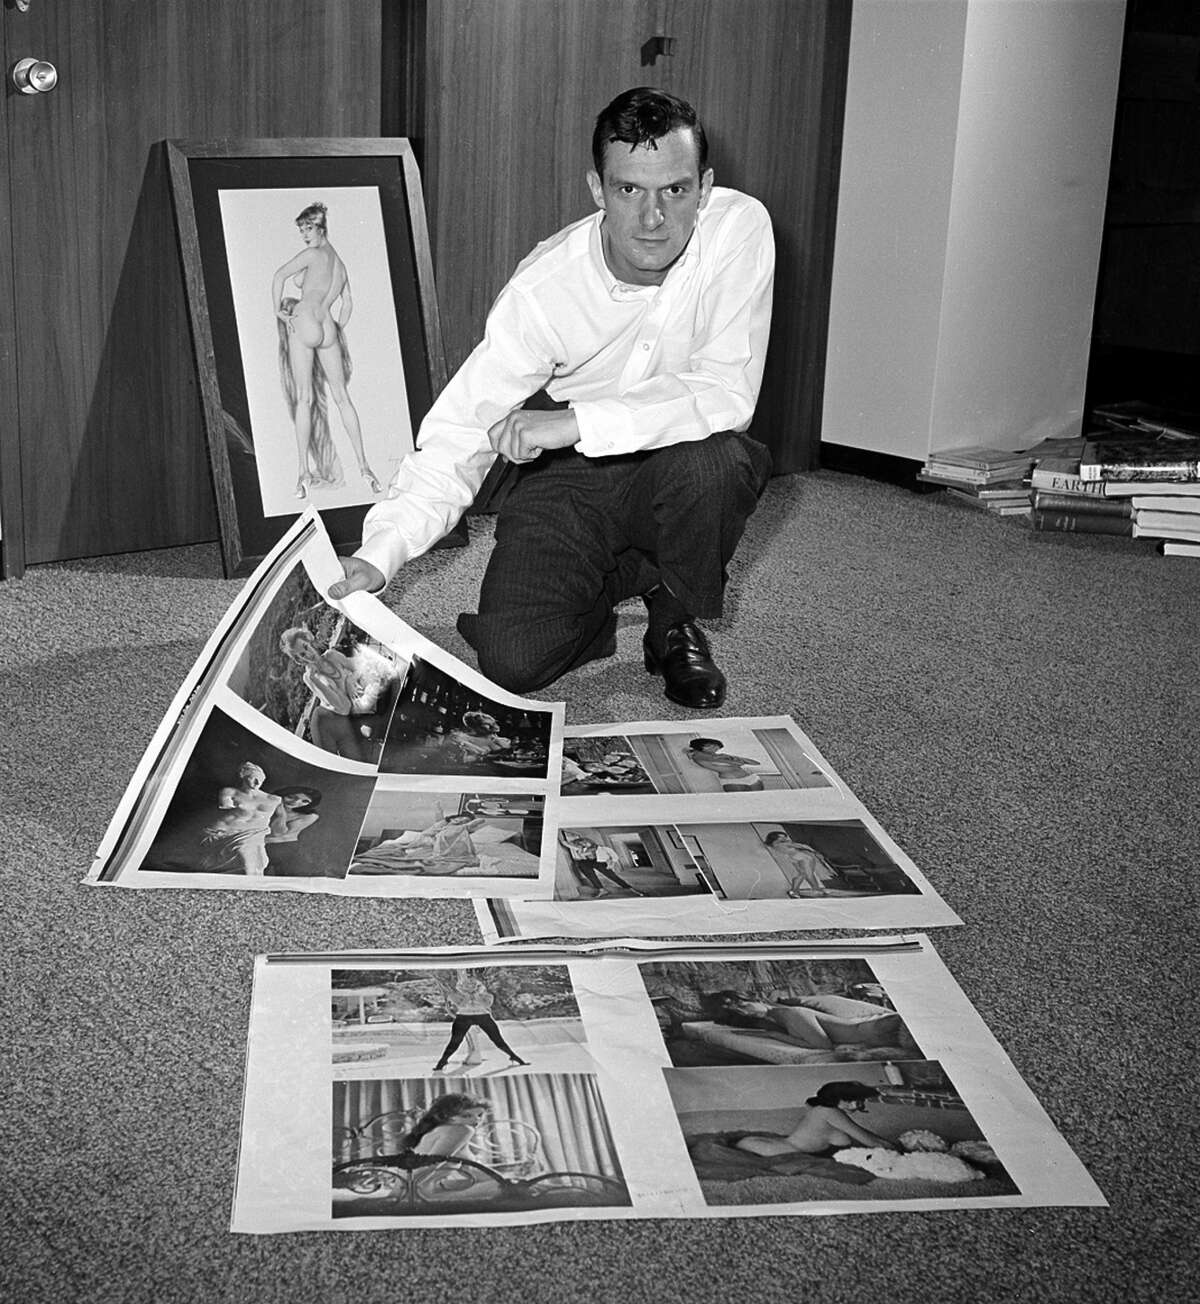 Publisher Hugh Hefner looks over proof sheets for his magazine Playboy, in Chicago, on June 20, 1961.